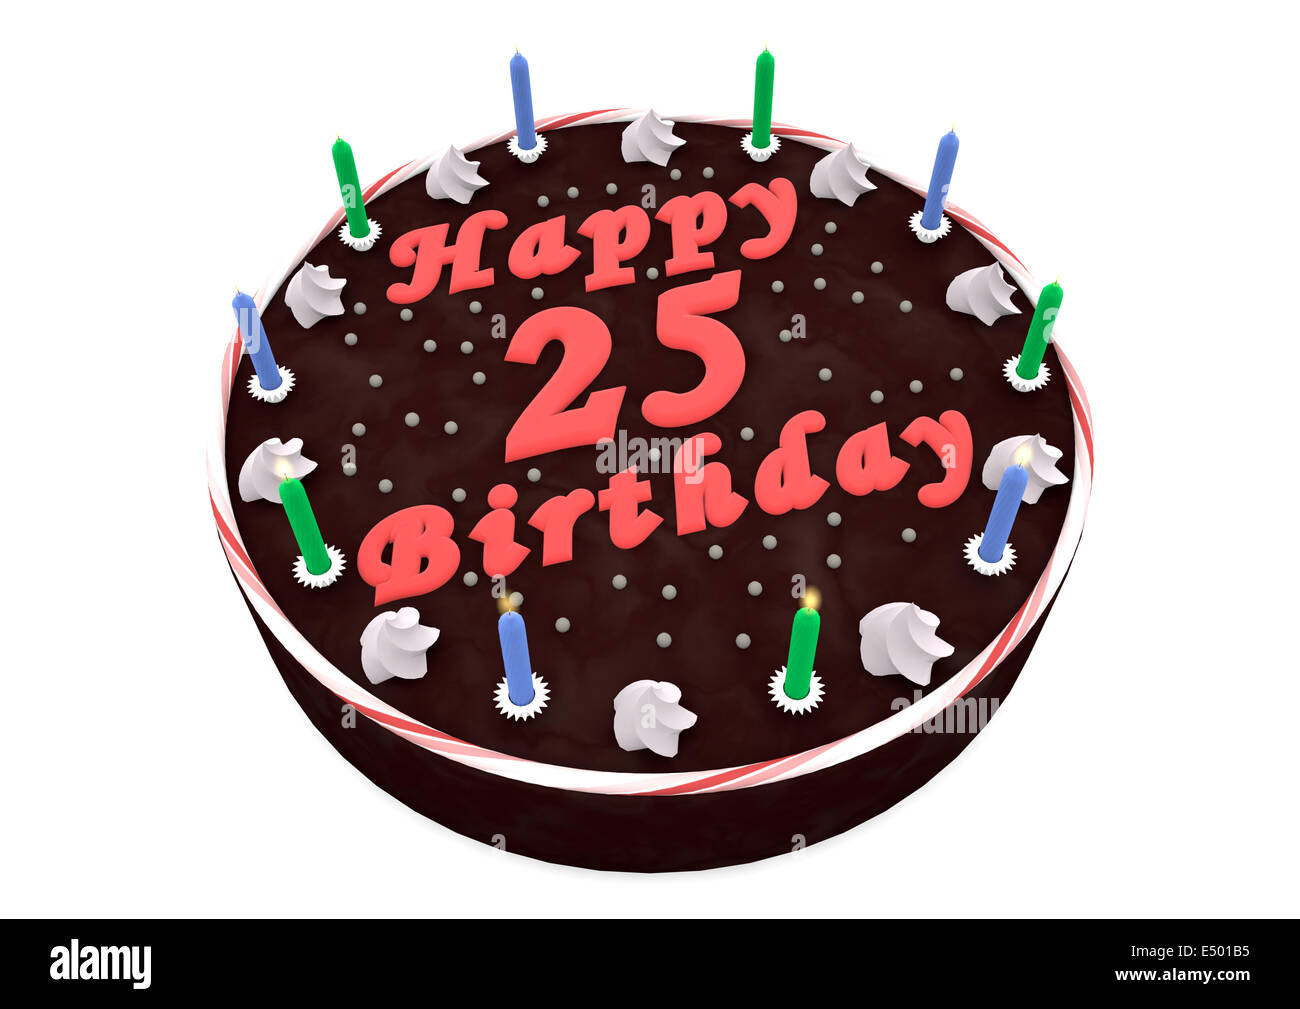 Chocolate Cake For 25th Birthday Stock Photo 71915849 Alamy